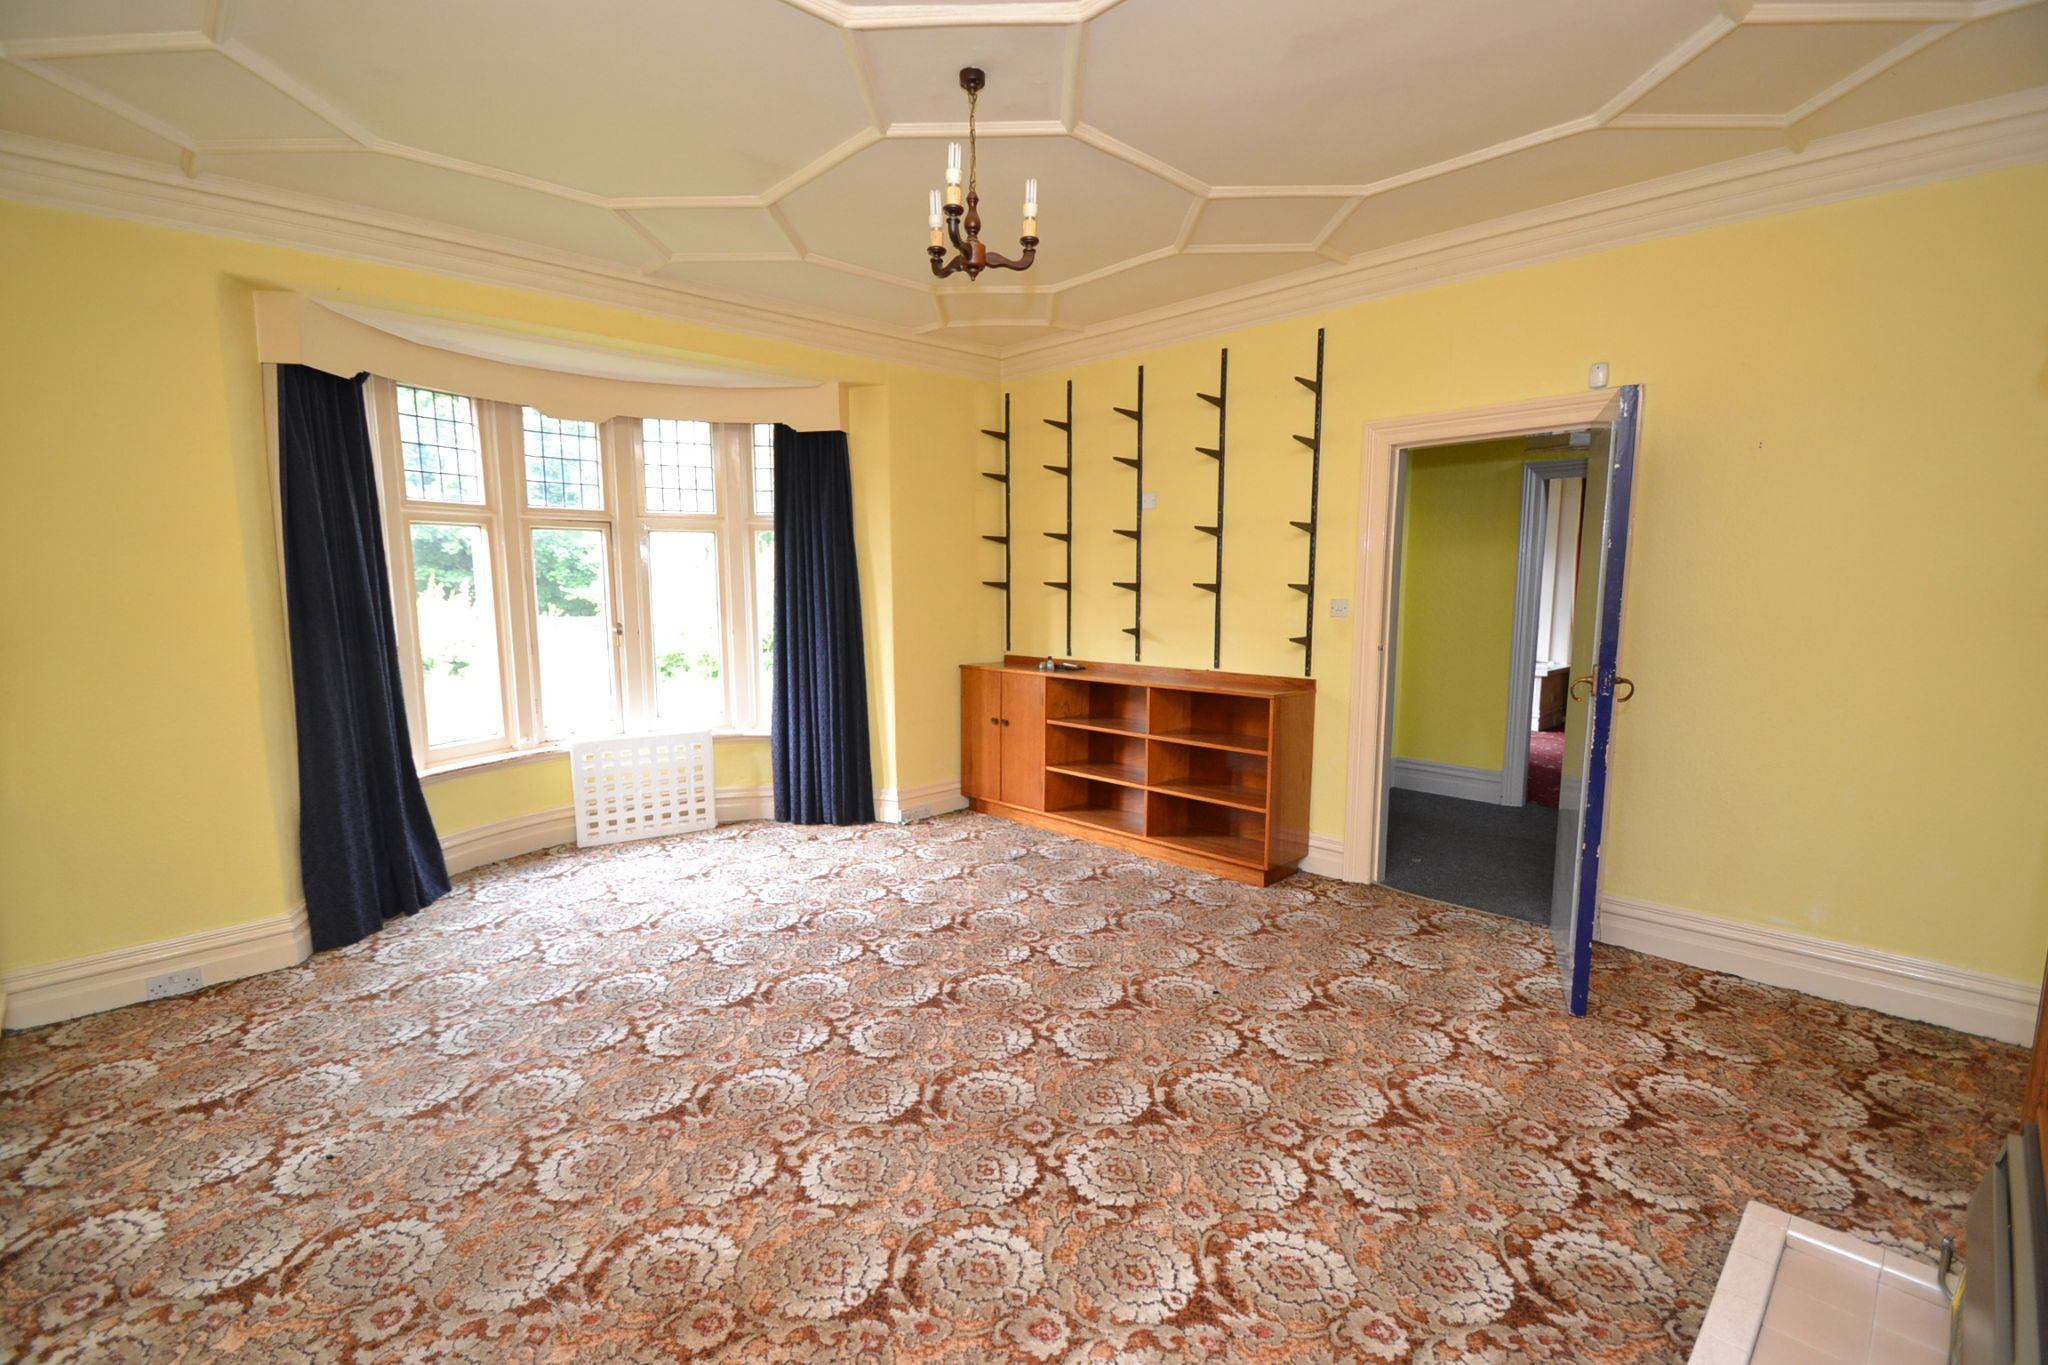 6 Bedroom Semi-detached House For Sale - Photograph 3